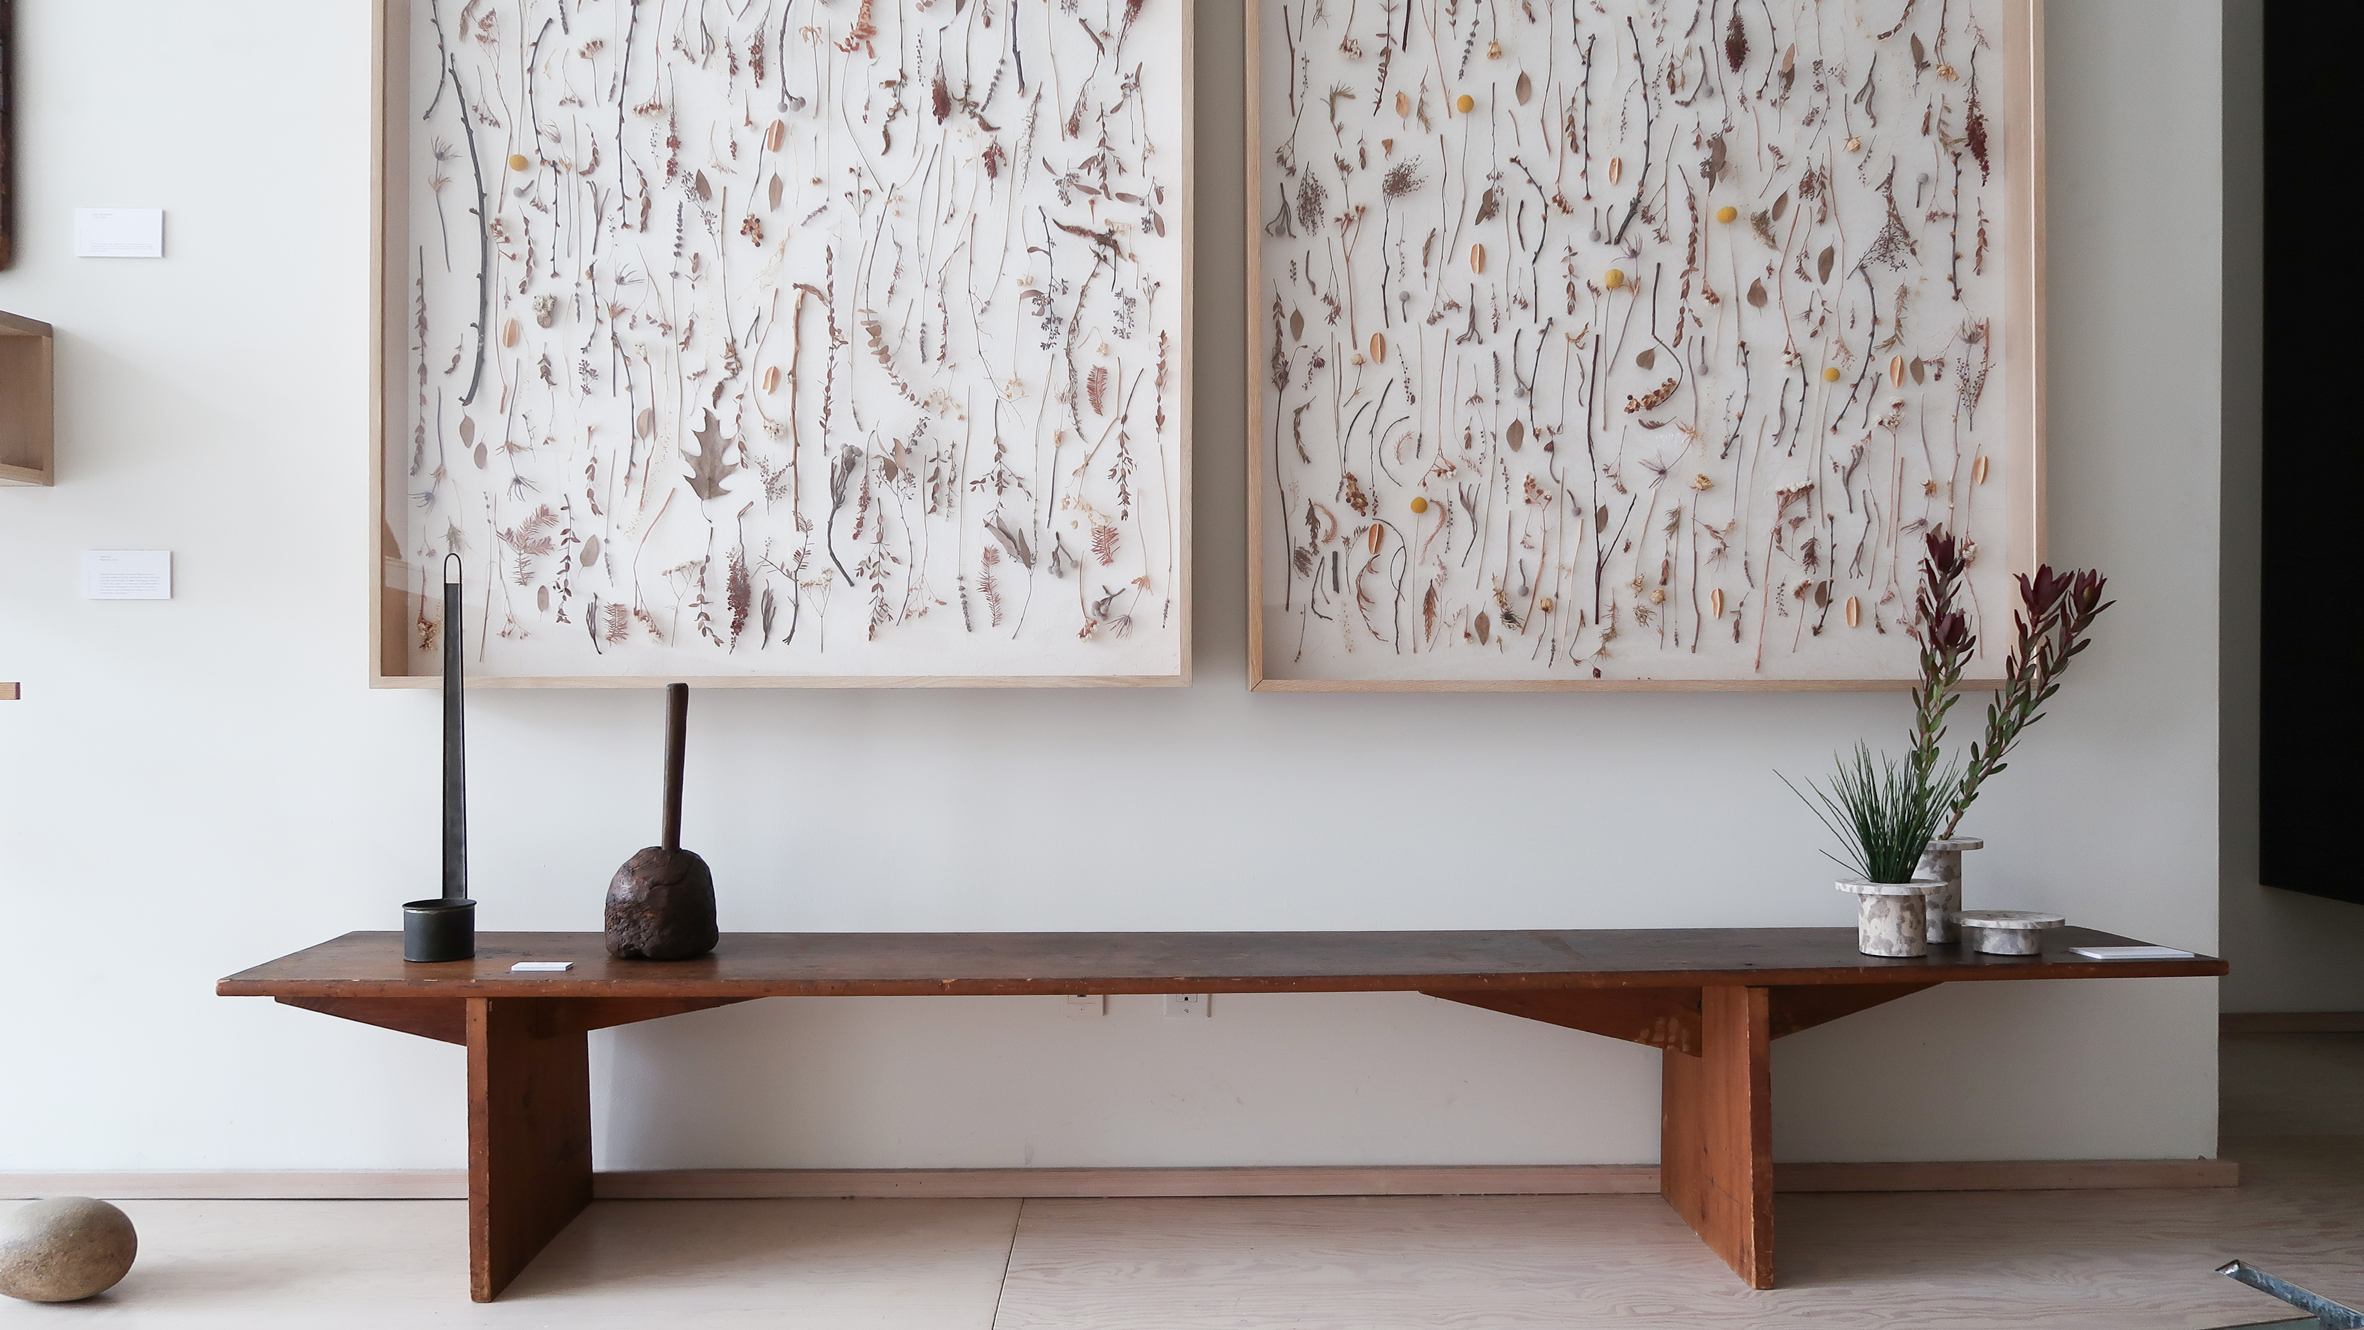 Original Shaker Artifacts Like A Large Cabinet Cast Iron Stove And Utensils Are Displayed Alongside Designs By Danish Masters Hans J Wegner Brge